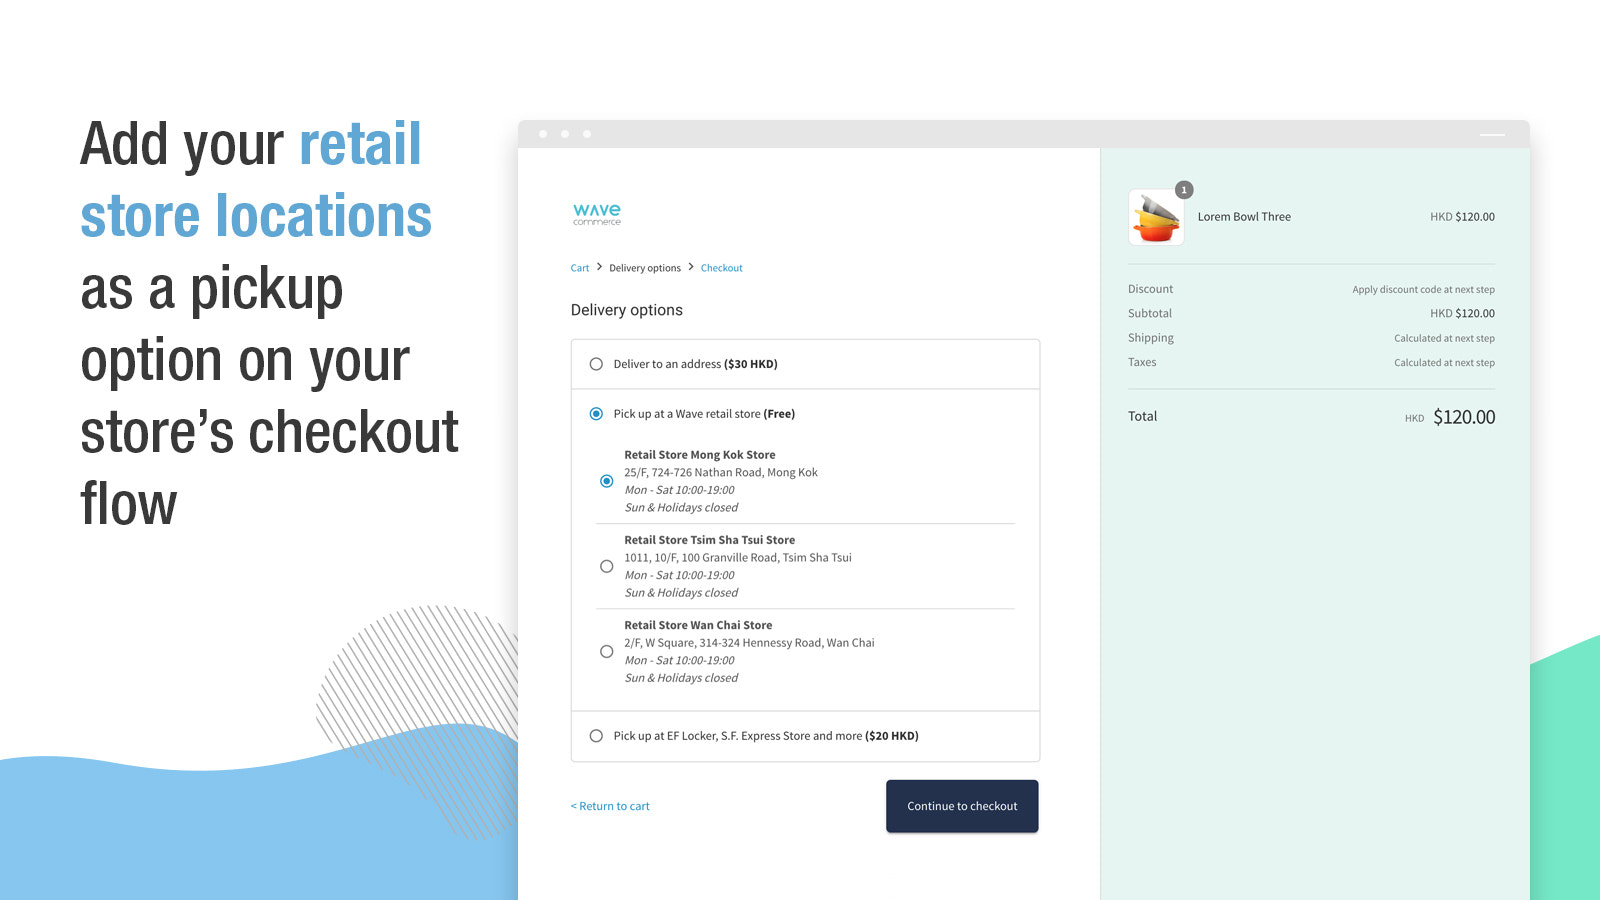 Add your retail store locations as a pickup option on your store